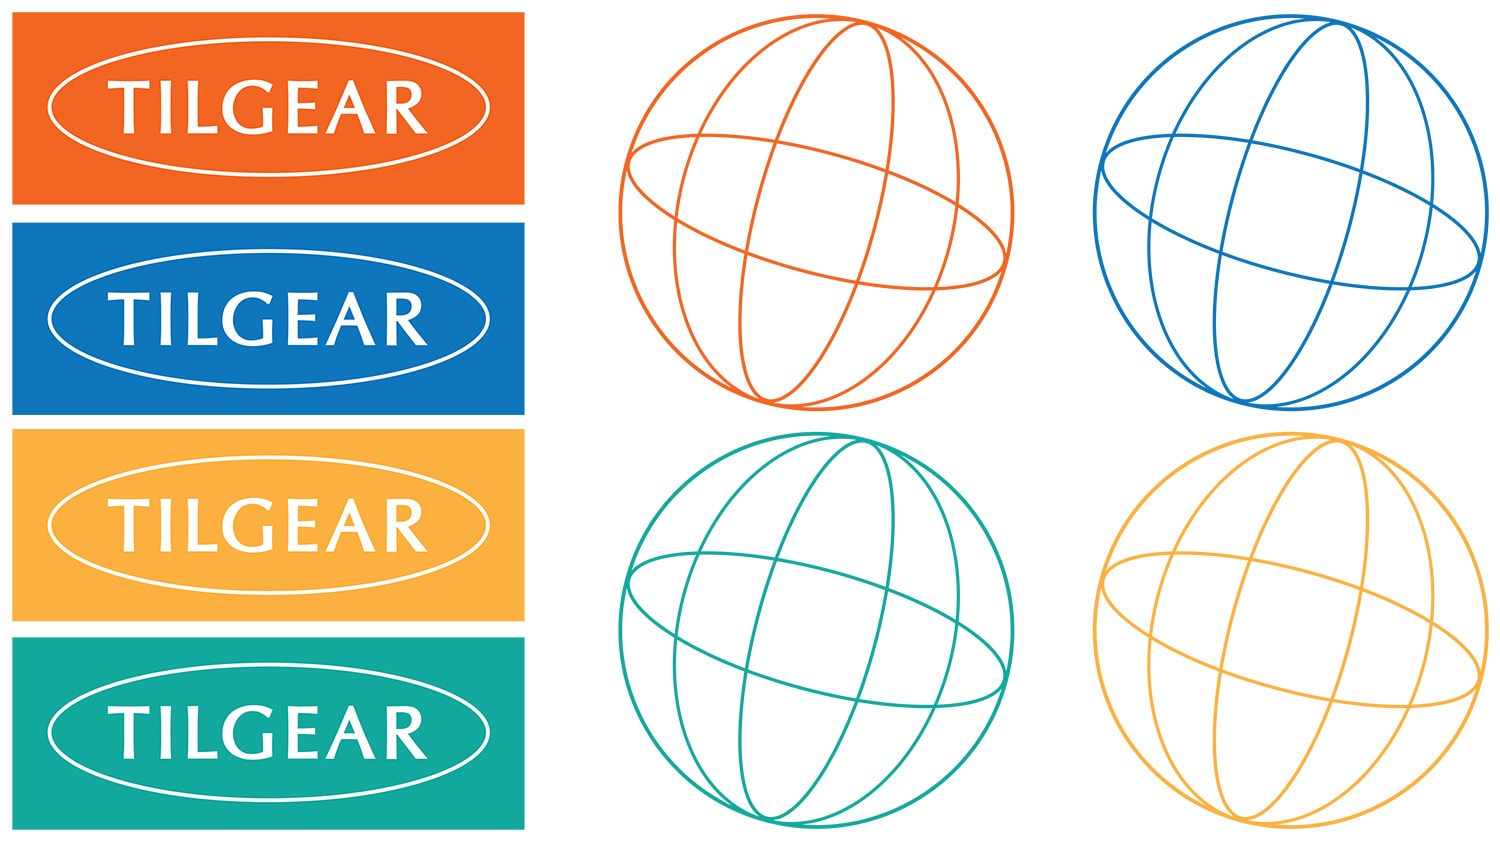 Tilgear Branding Design and globe symbol in different colour variations